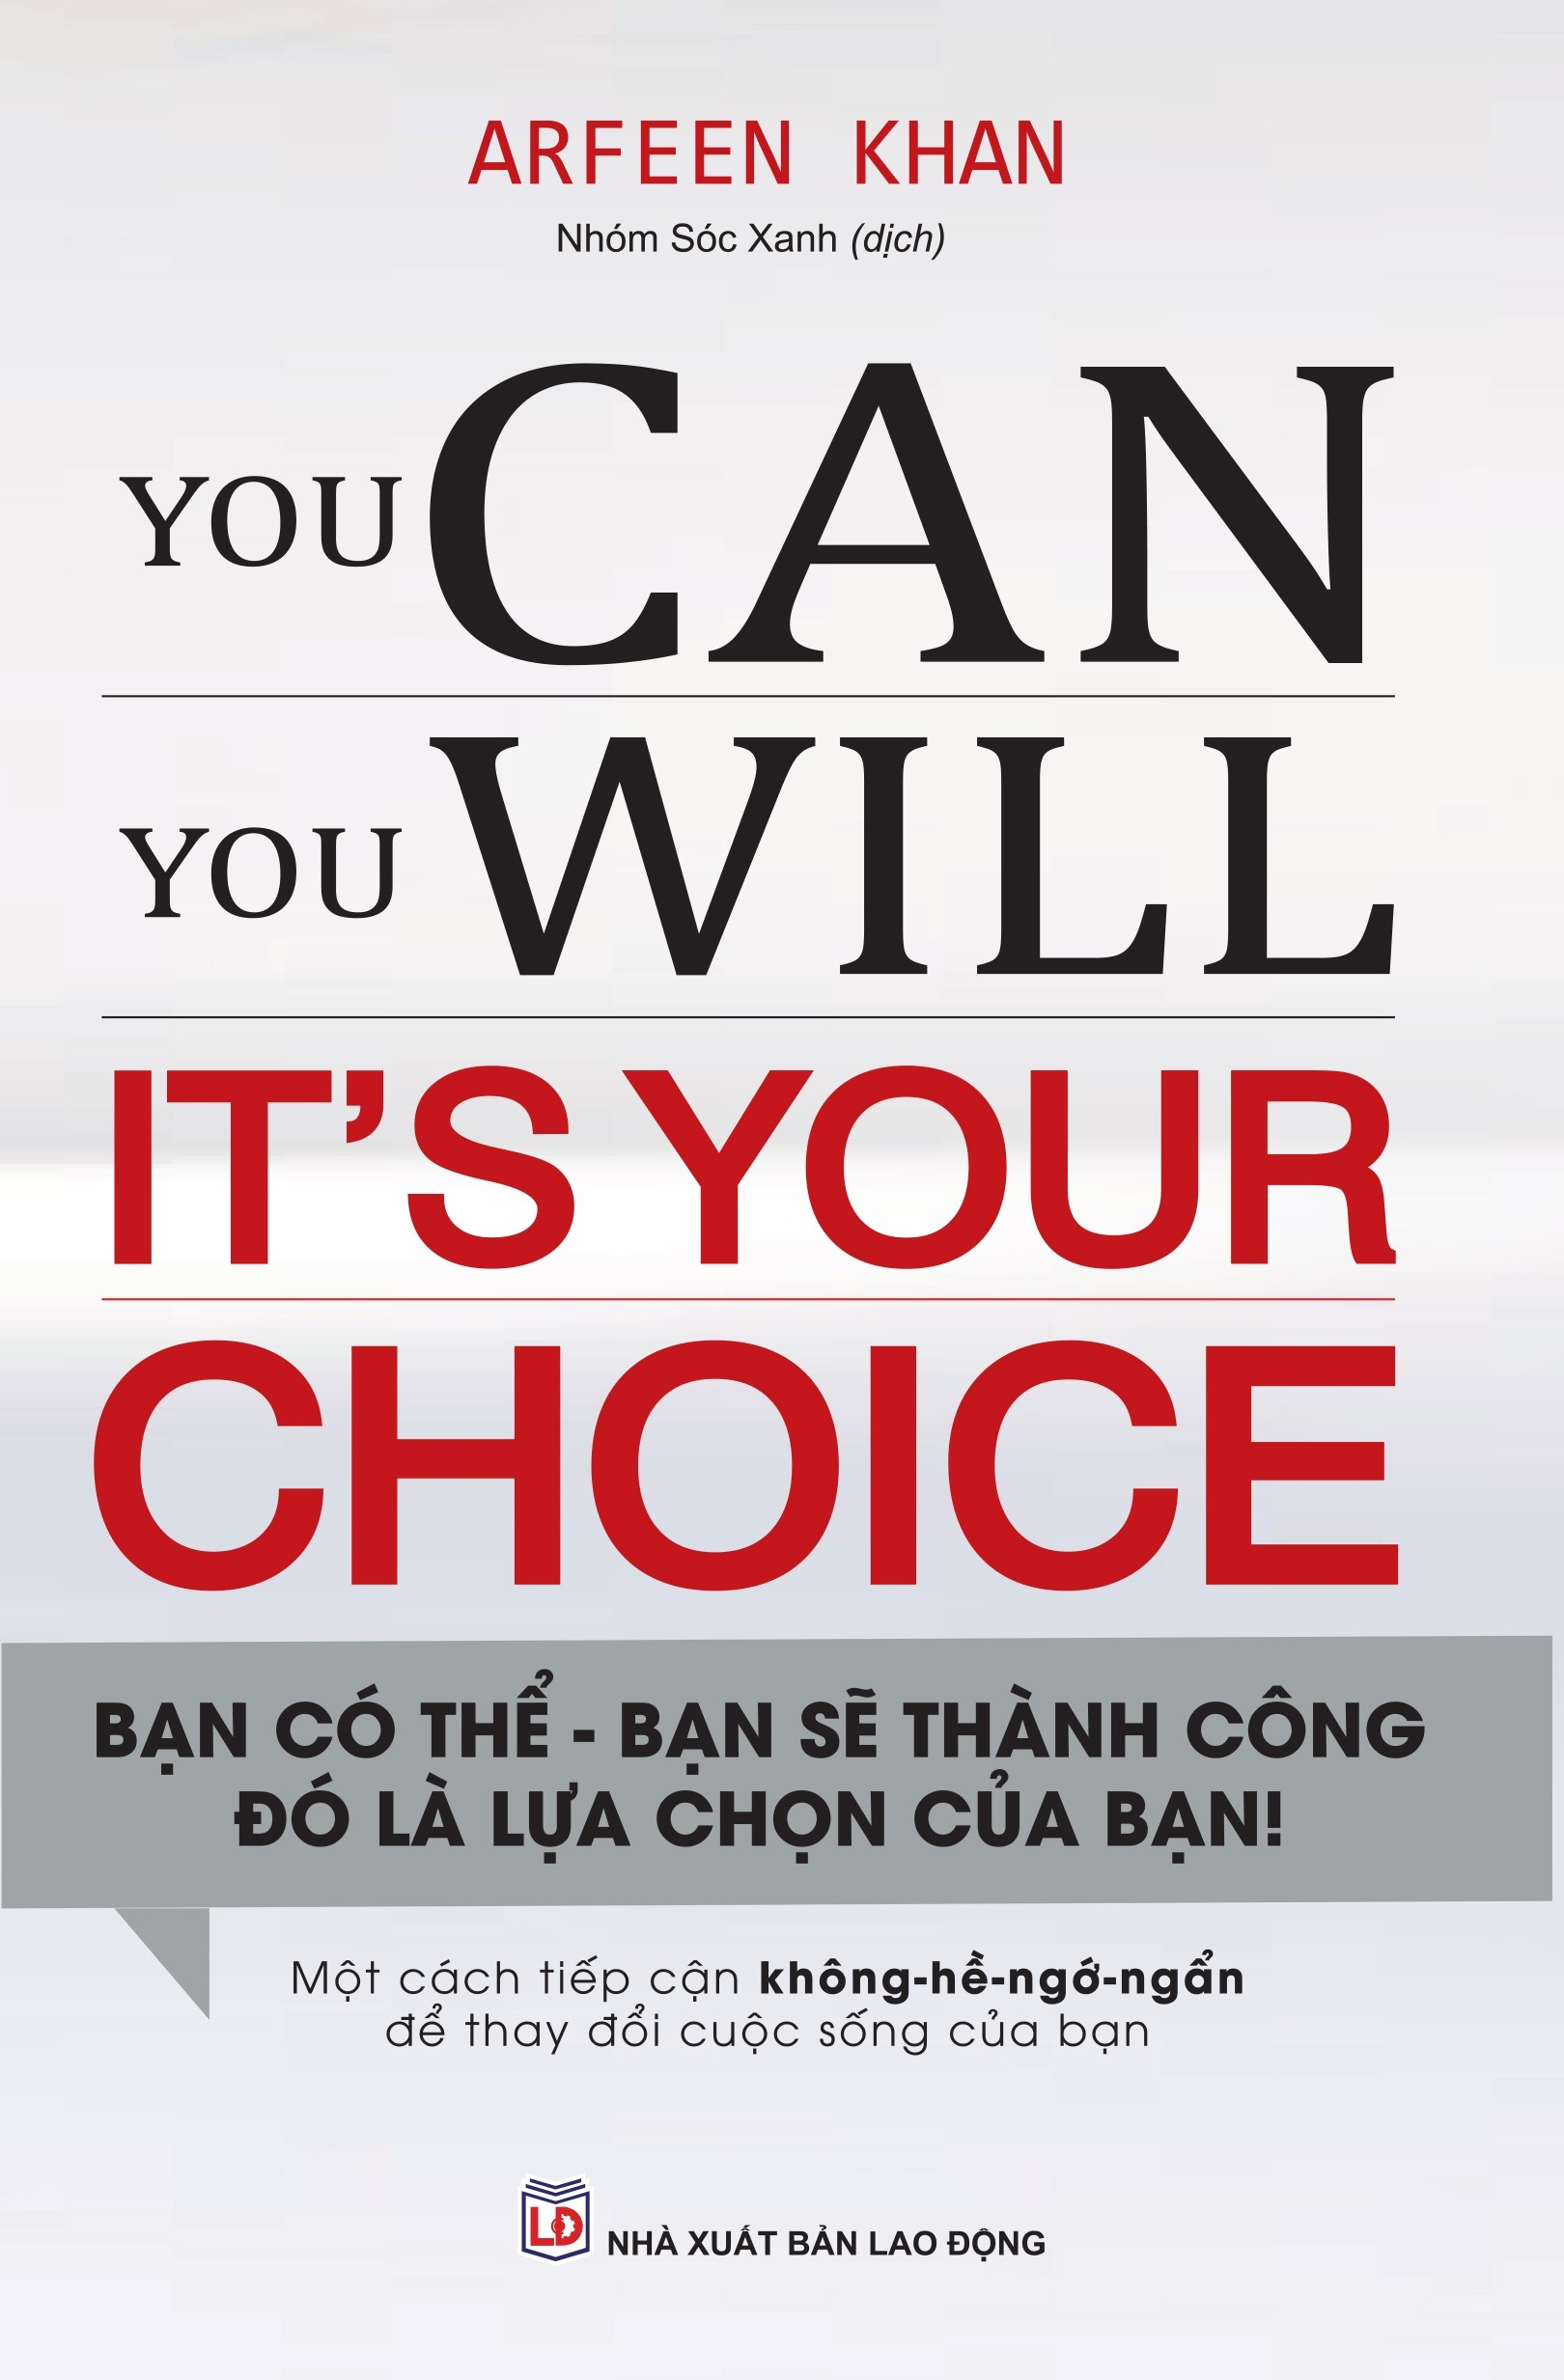 you can, you will - it's your choice - ban co the, ban se thanh cong, do la su lua chon cua ban